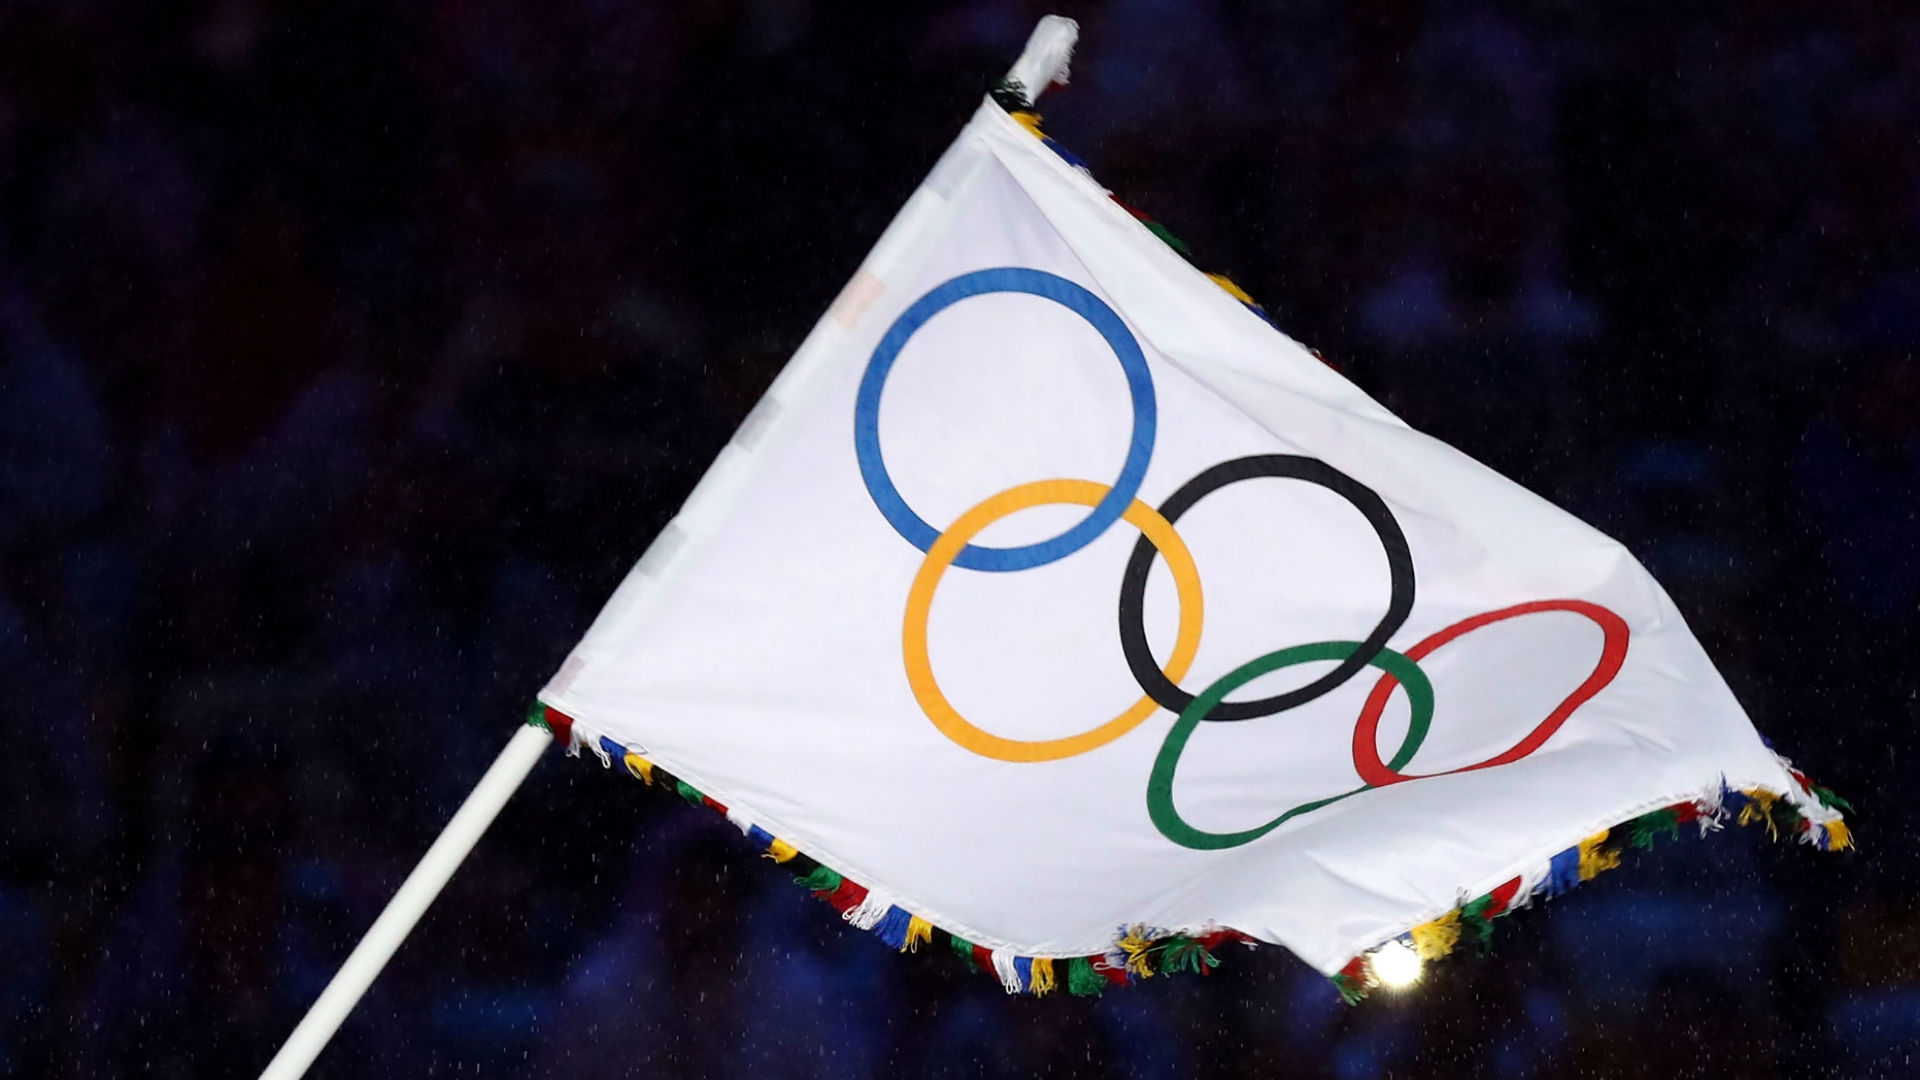 Olympics set for Paris in 2024 and LA in 2028